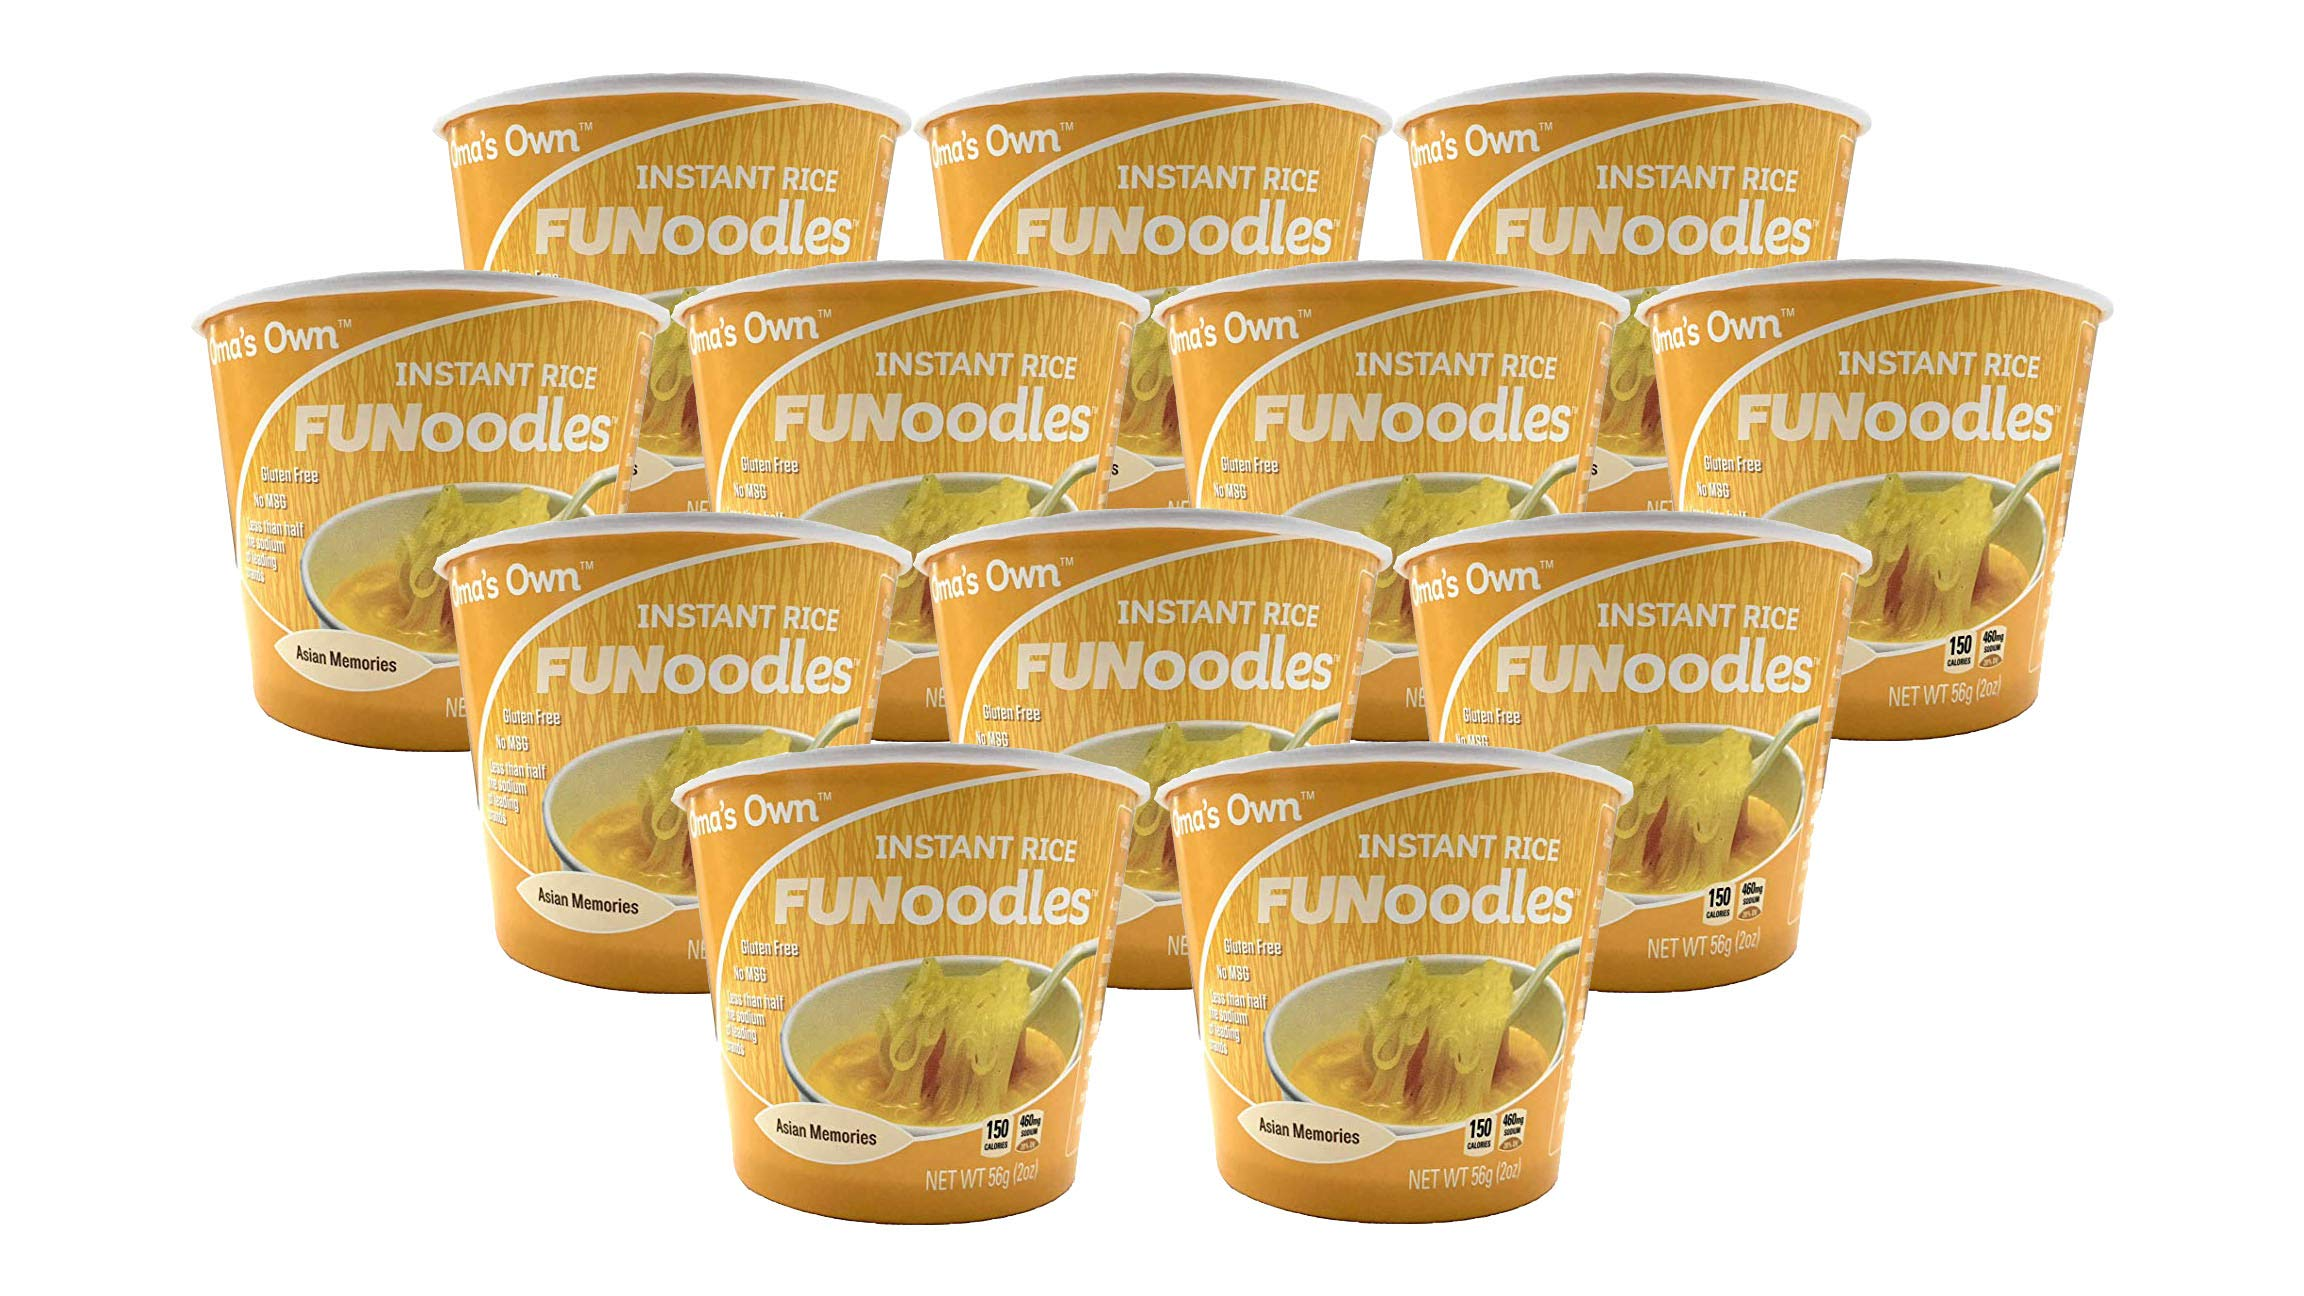 Oma's Own FUNoodles (Asian Memories) Vegetarian, Gluten Free, No MSG, Non-GMO, 2 oz cups (12 count) ... (Asian) ... by OMA'S OWN